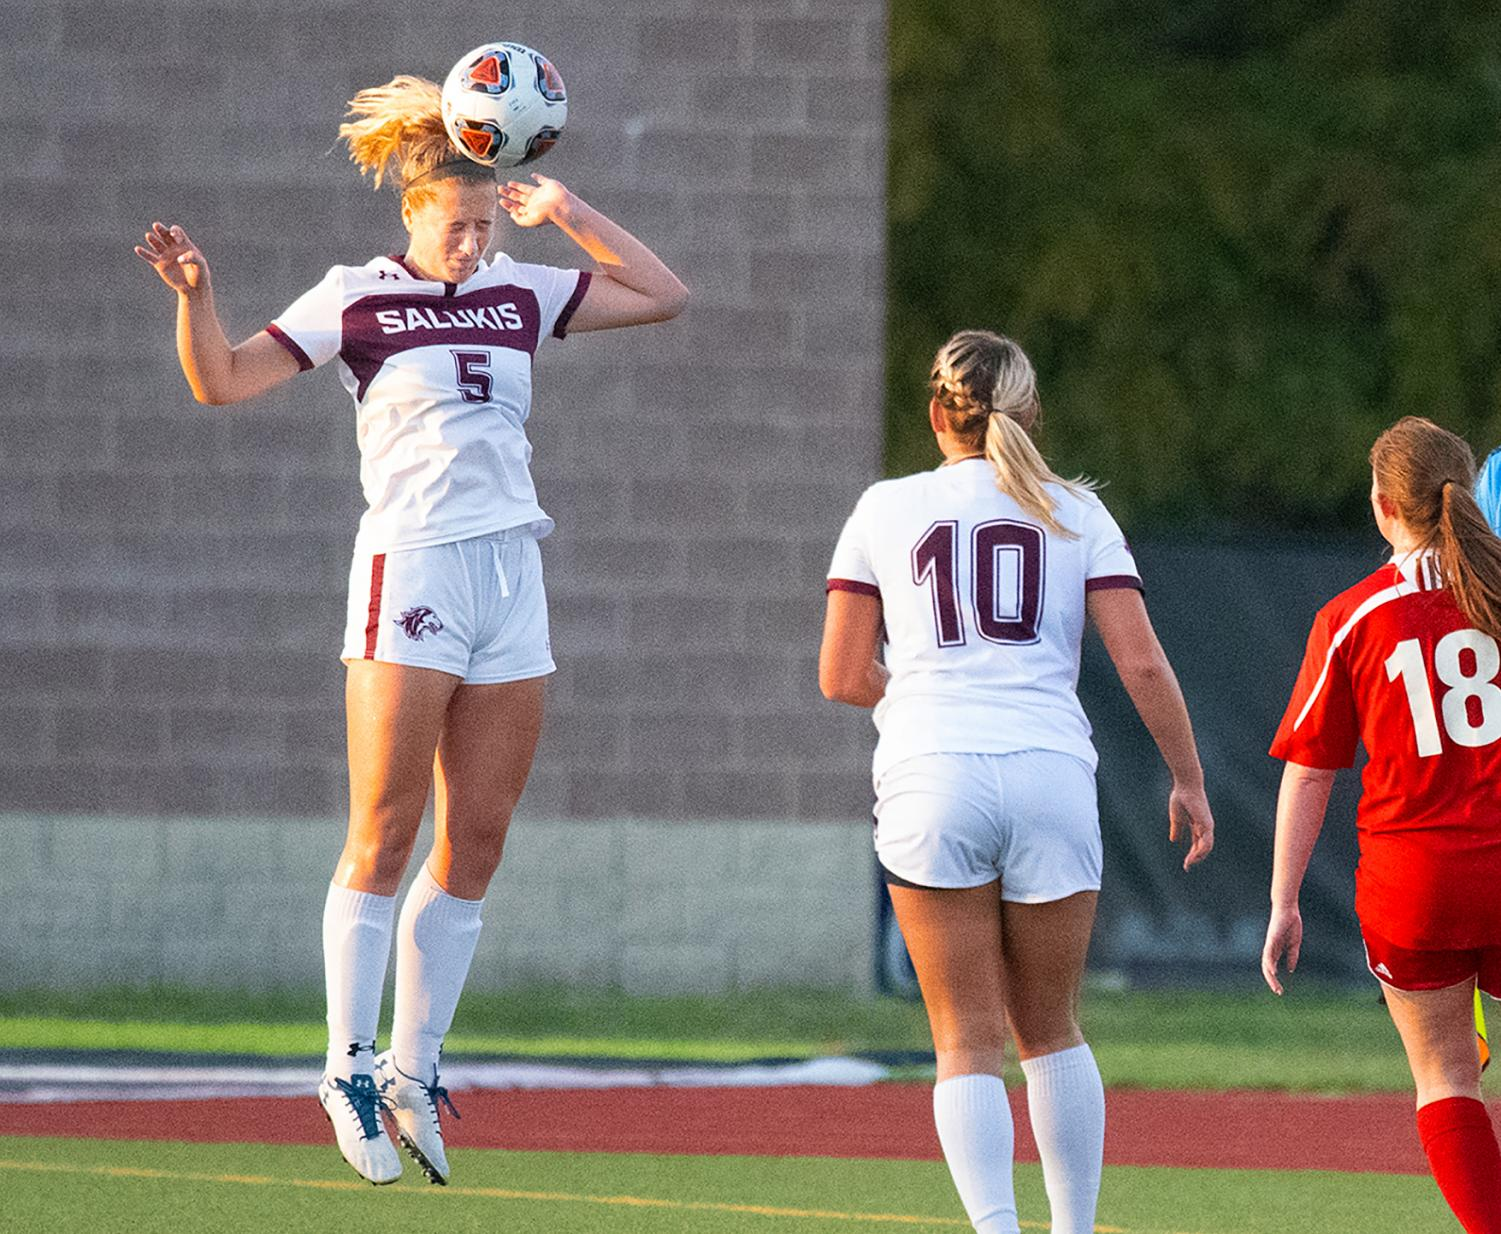 Saluki+Christy+Murauskis+headbutts+the+ball+on+Tuesday%2C+Aug.+27%2C+2019+during+the+Salukis%27+1-0+win+against+the+Rose-Hulman+Fightin%27+Engineers+at+the+Lew+Hartzog+Track+%26+Field+Complex.